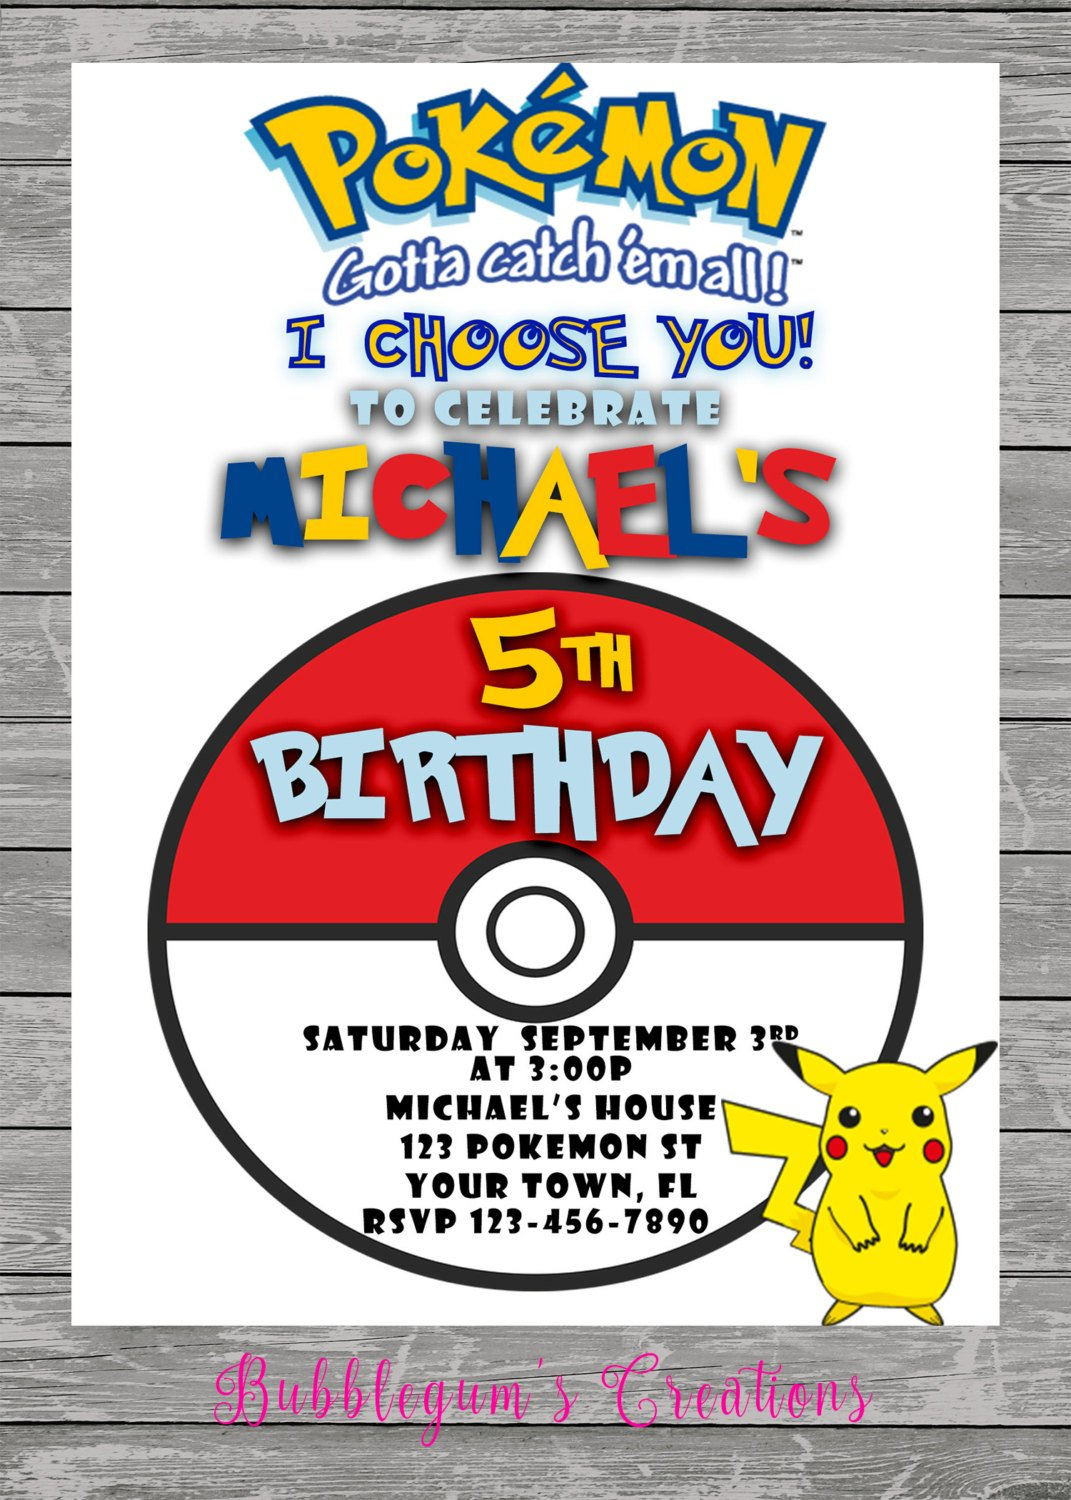 Pokemon Go Birthday Invitation - Pokemon Invite - Printable - Digital - Pokemon Invitations Printable Free